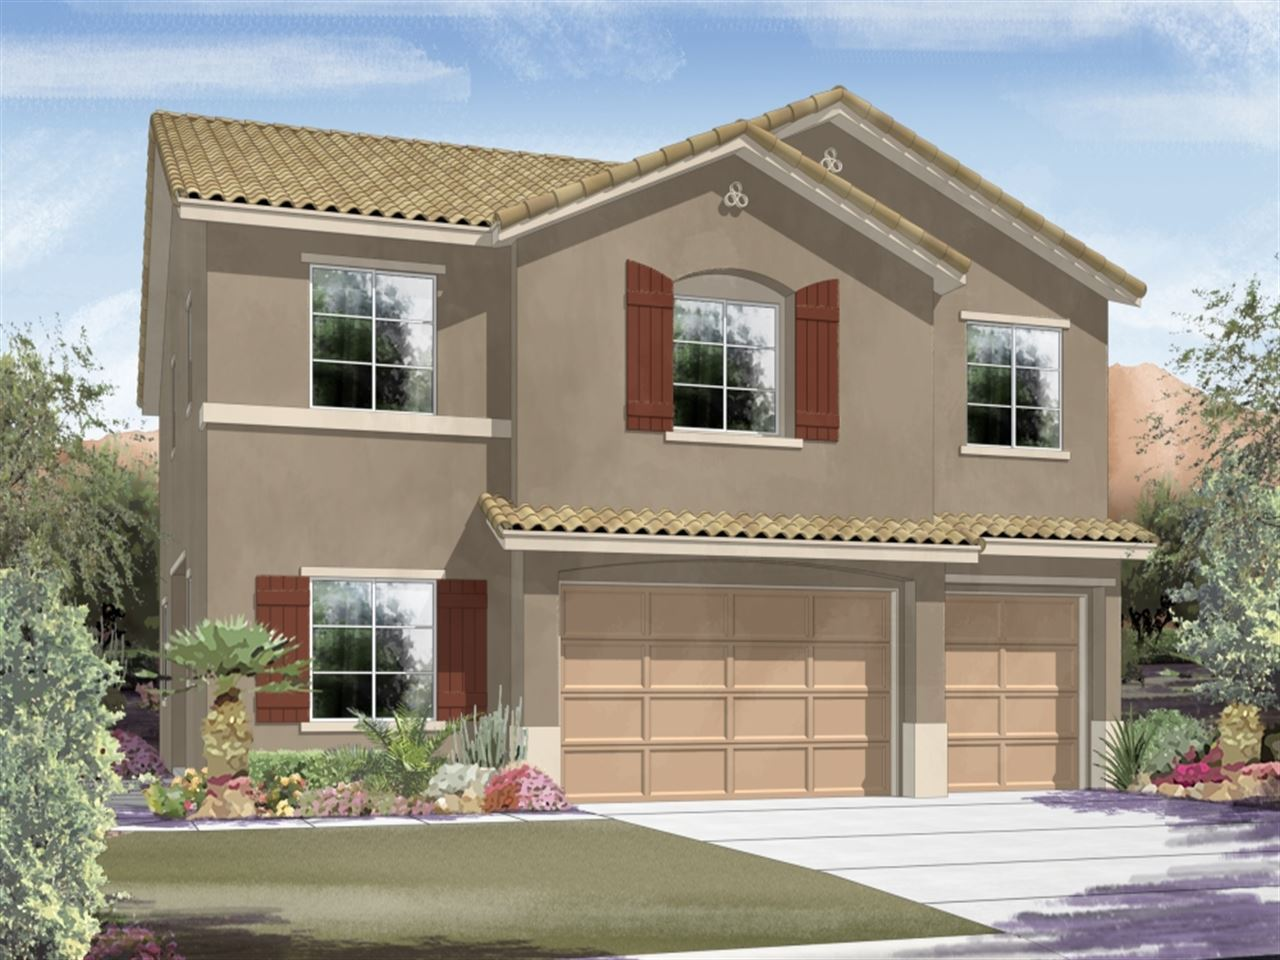 sovana las vegas nevada homes for sale luxury real estate liv sotheby 39 s international realty